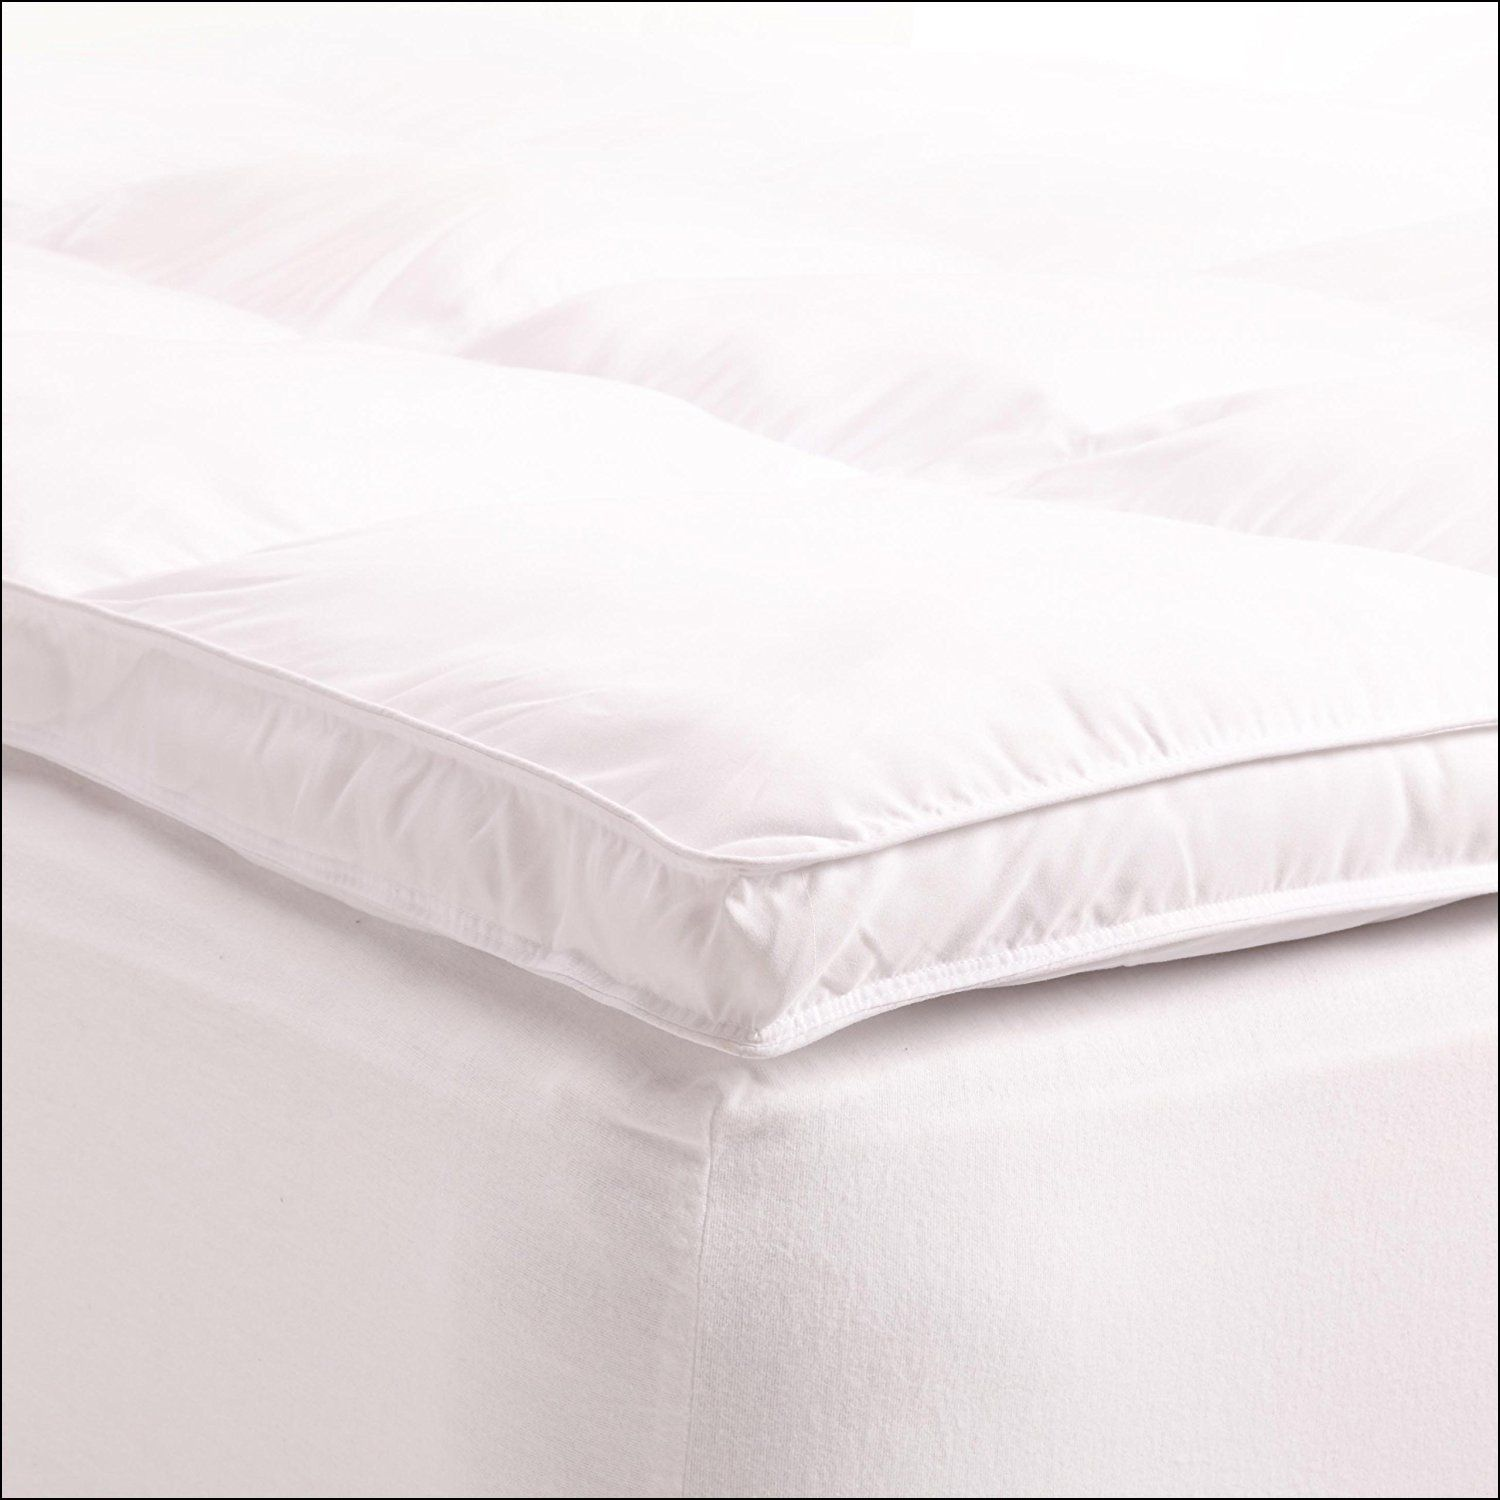 Pillow Top Mattress Covers Extraordinary Best Pillow Top Mattress Pad For Back Pain  Mattress Ideas